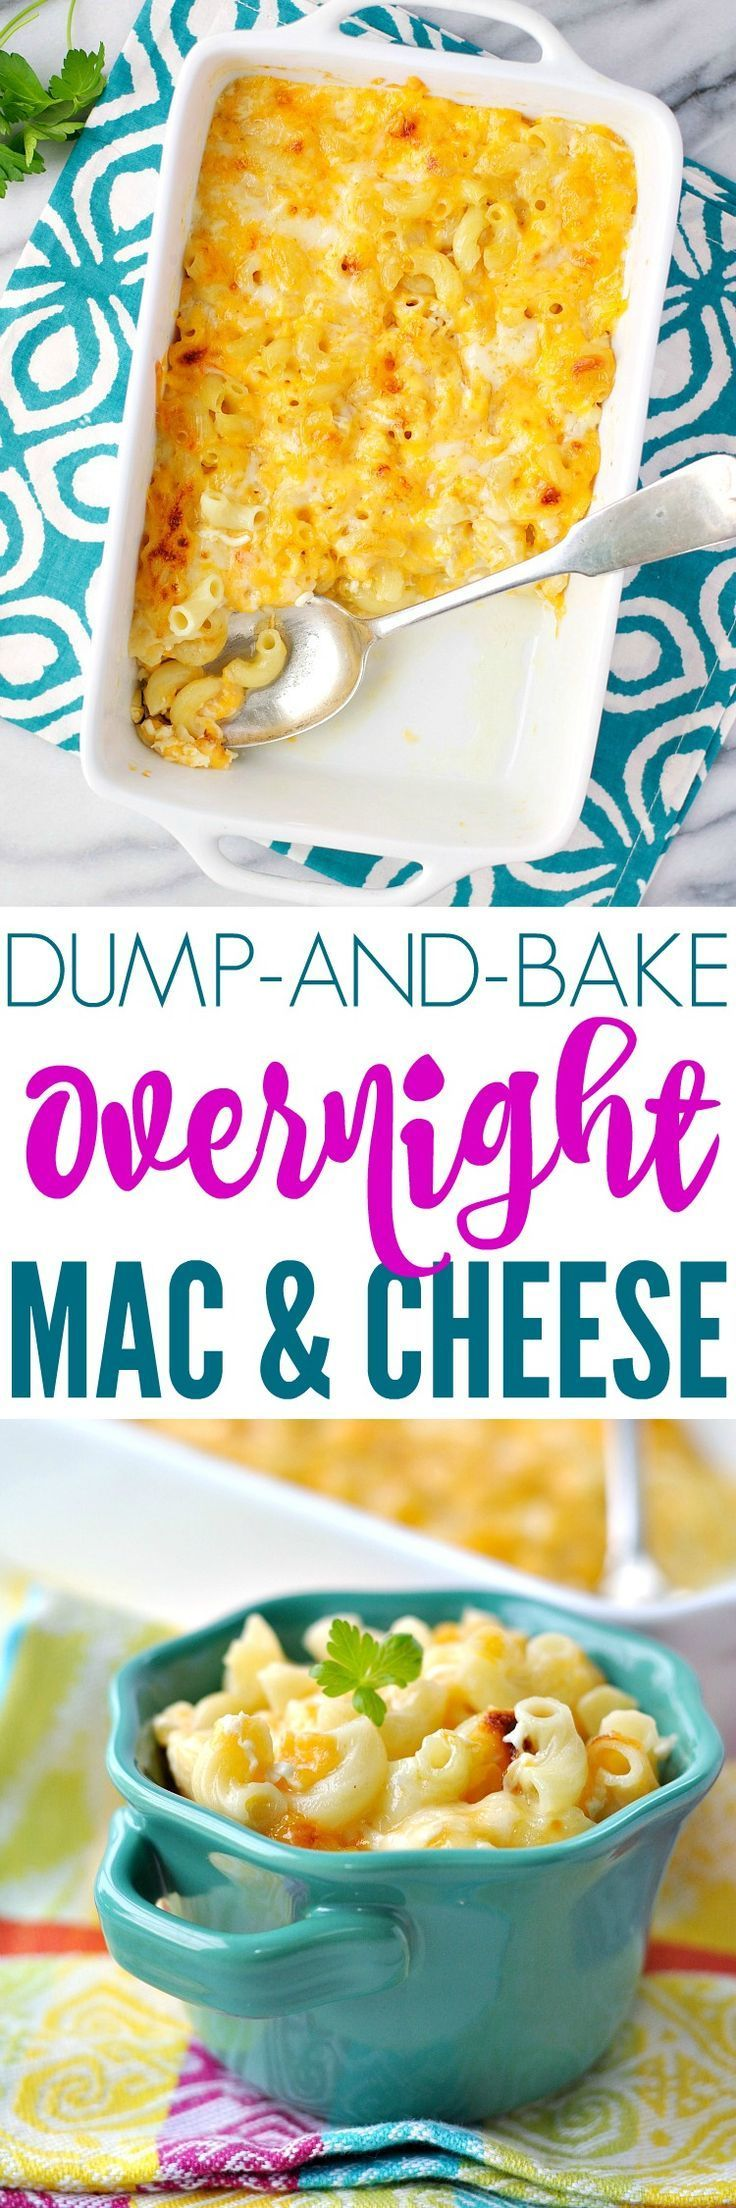 No boiling the pasta for this DUMP-AND-BAKE OVERNIGHT MAC AND CHEESE! Macaroni and Cheese Recipes | Easy Pasta Recipes | Easy Dinner Recipes | Casserole Recipes | Side Dish Recipes | Sides | Side Dishes